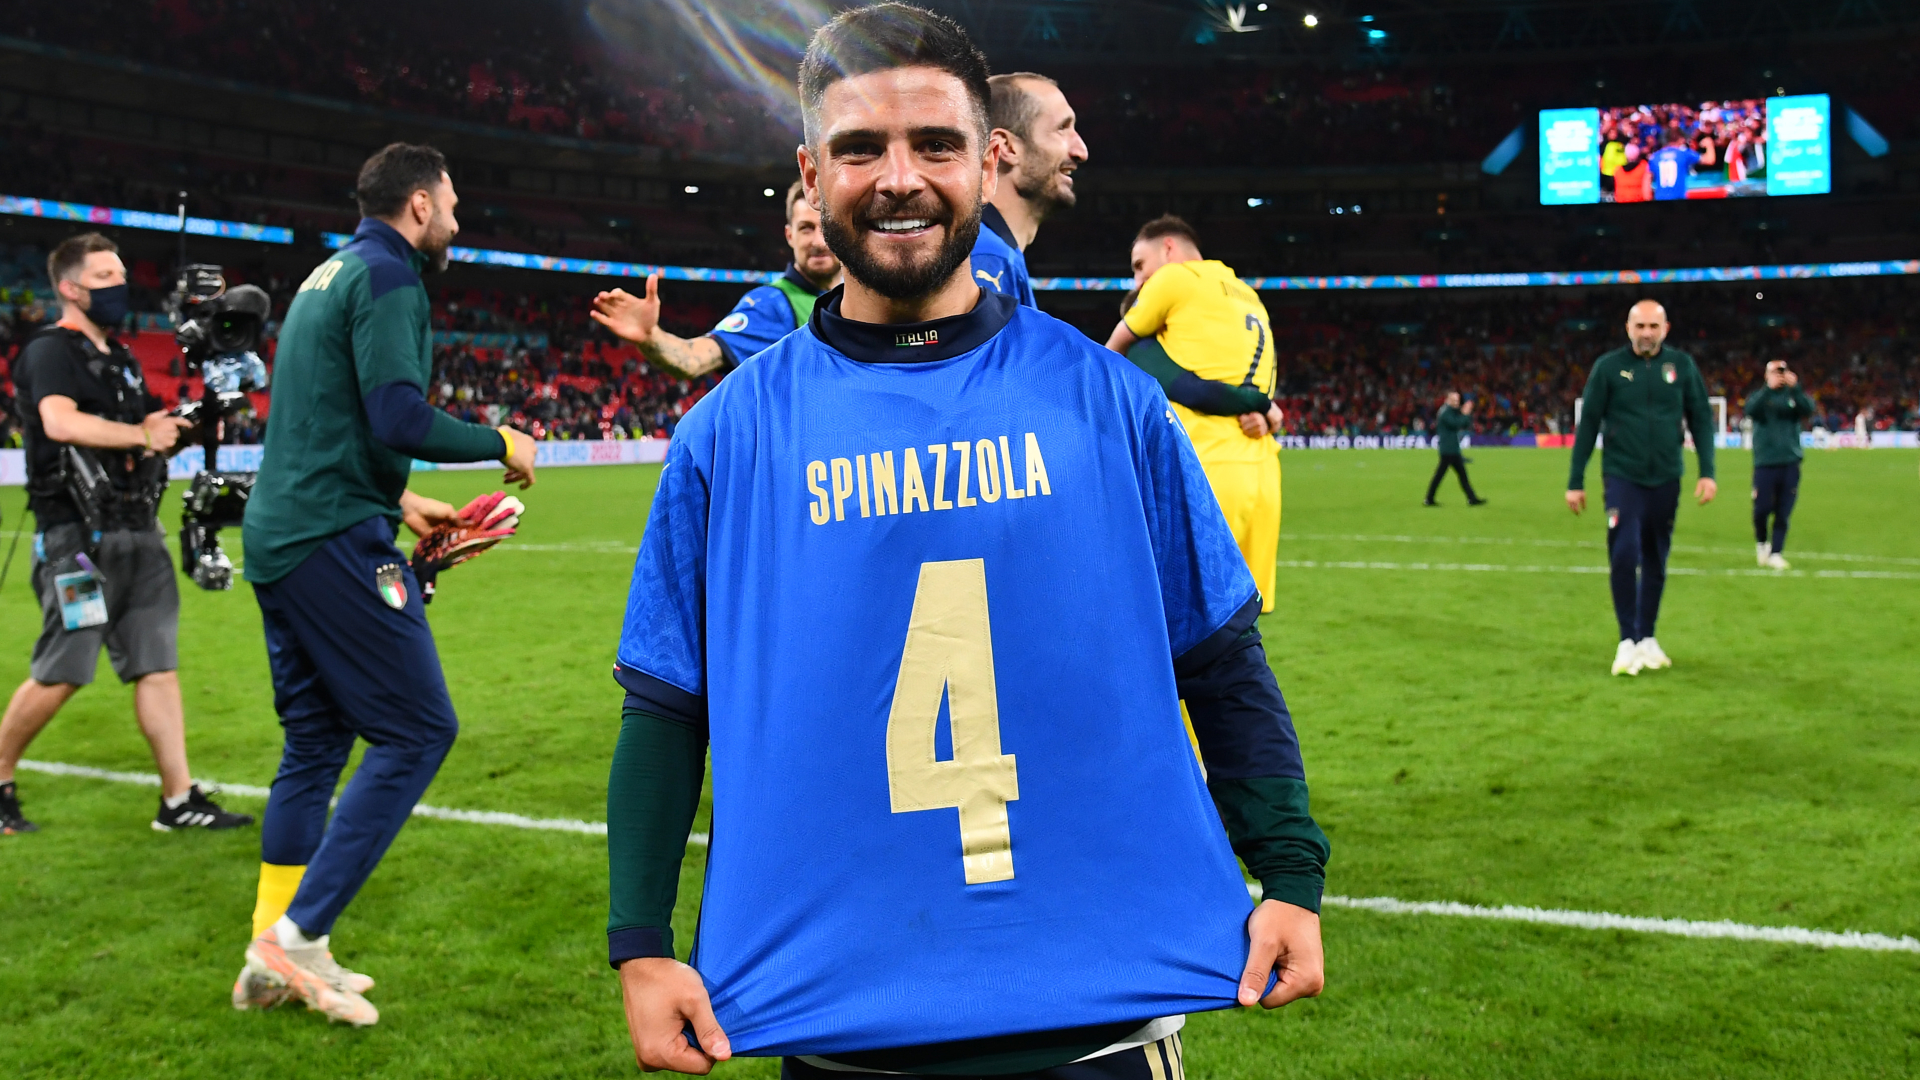 Italy star Chiesa dedicates Man of the Match award to injured Spinazzola after triumph over Spain